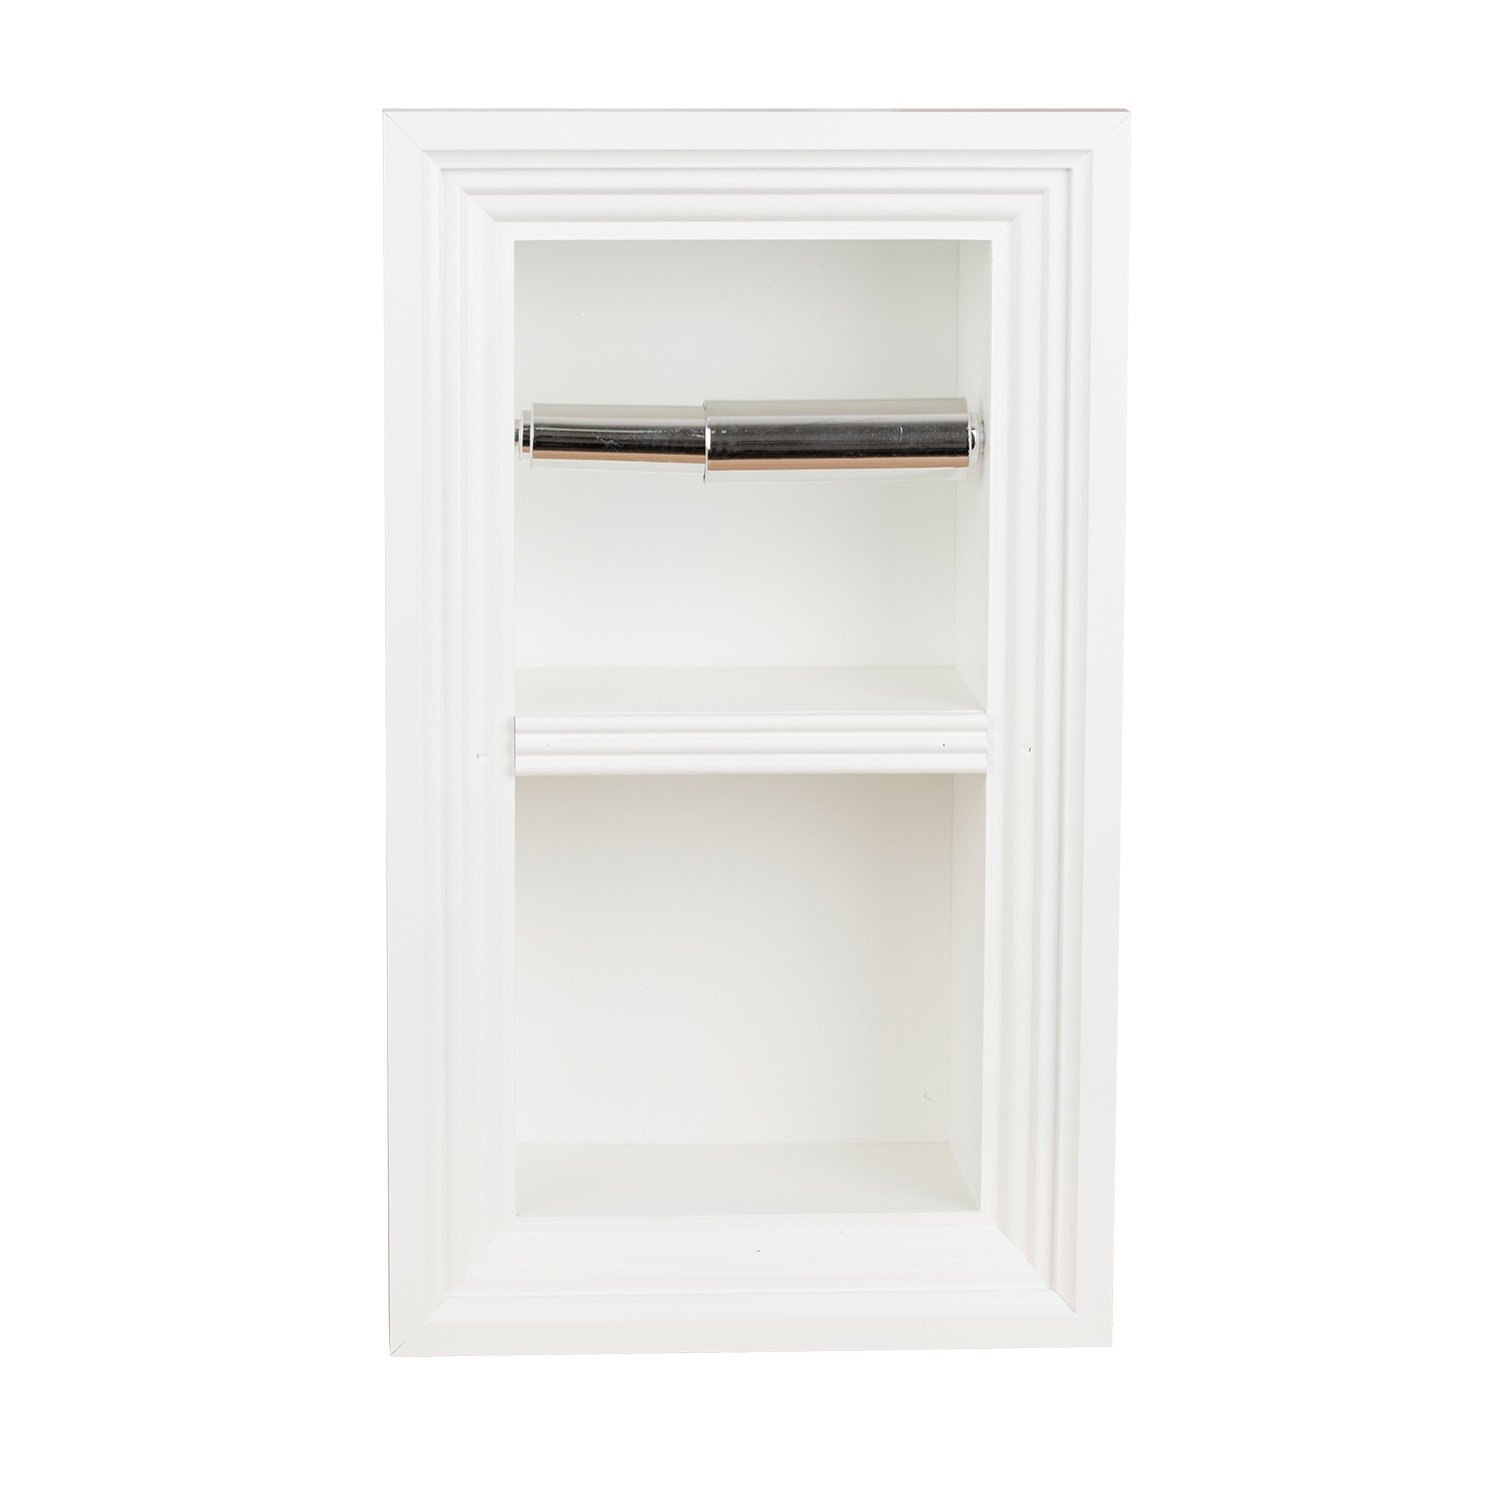 Florida Breeze Cabinets Zephyr Recessed Toilet Paper Holder with Spare Roll, Alabaster